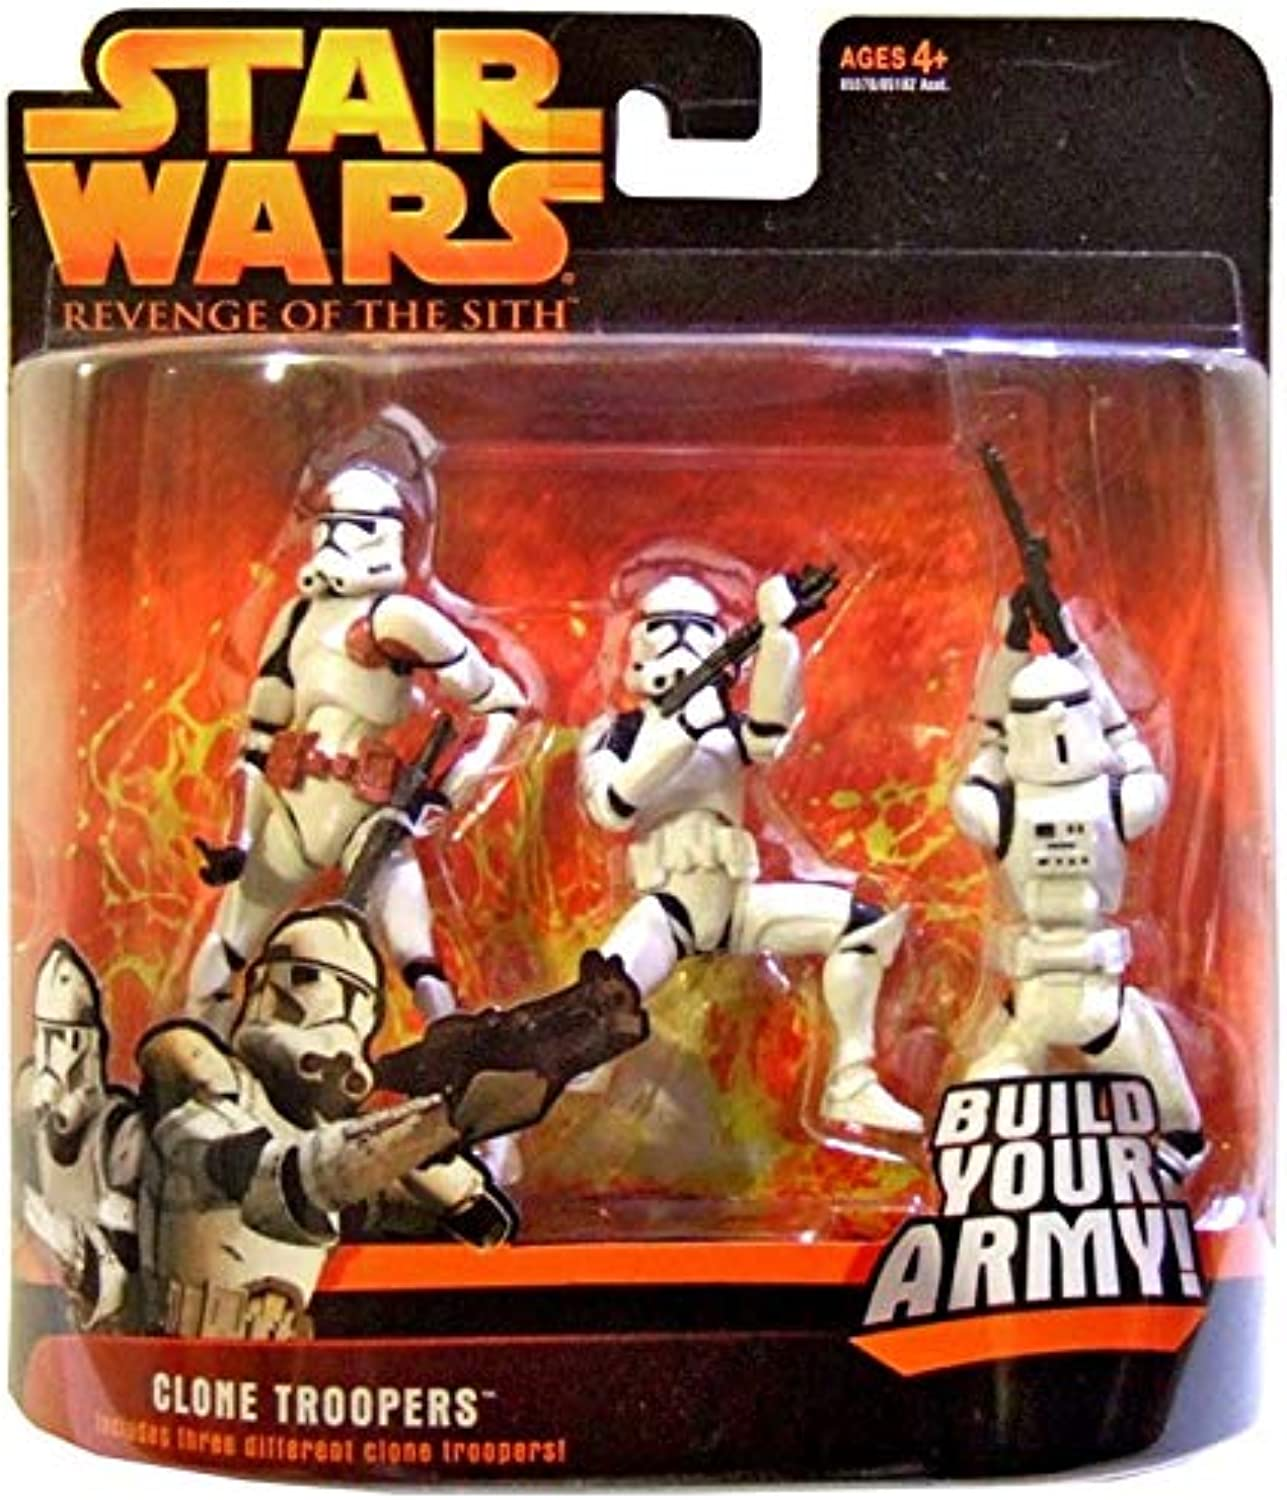 Star Wars Revenge of the Sith Clone Trooper rot Rust Variant Army 3-Pack Deluxe Figure by Hasbro